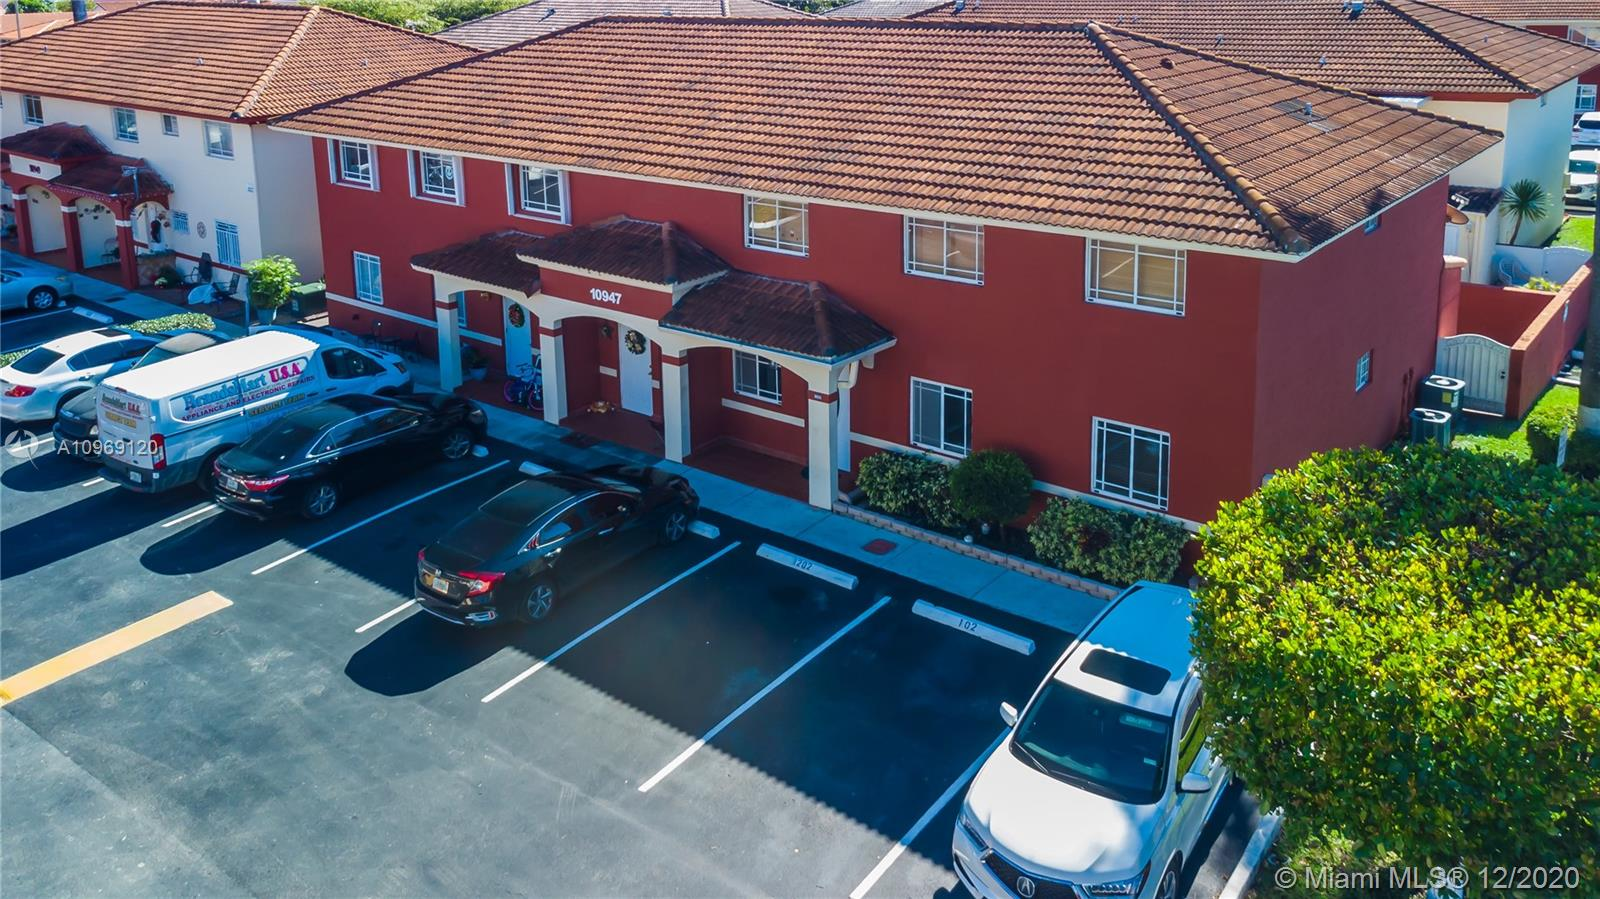 This is a MUST  SEE,  great location and  great opportunity. A wonderful condo located in the heart of Hialeah Gardens. This condo is listed as 2 bedrooms/ 2 bathrooms in the county, but it's actually 3 bedrooms/ 2 bathrooms. Excellent size back yard for entertainment and gatherings. The unit has more than enough space for any family big or small. Come see for yourself and make this your forever home. Right next to Okeechobee RD, FL Turnpike, and 826.